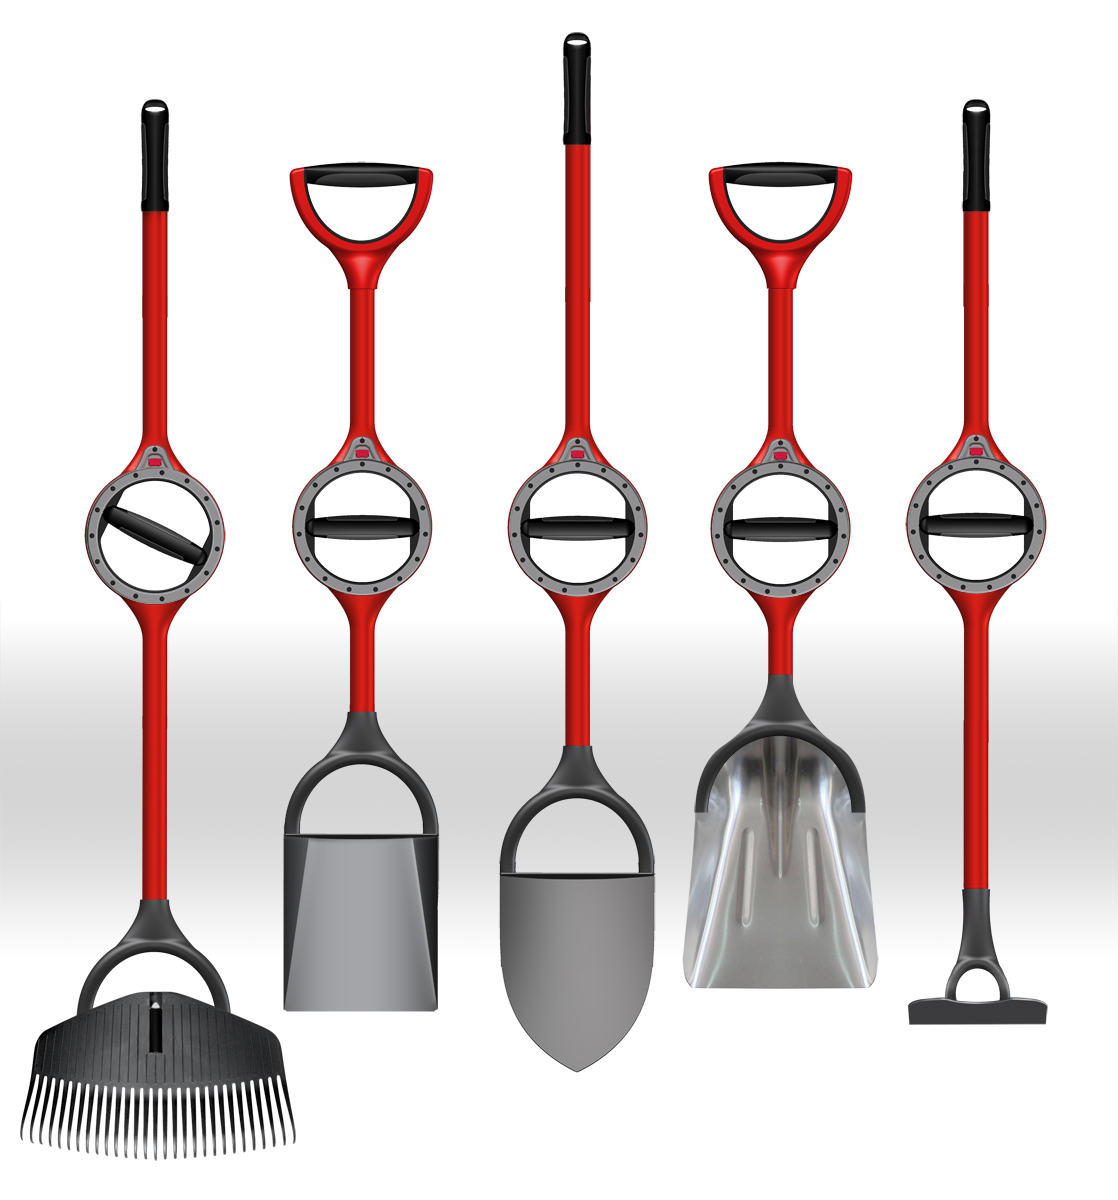 Bosse Tools manufactures ergonomically redesigned shovels